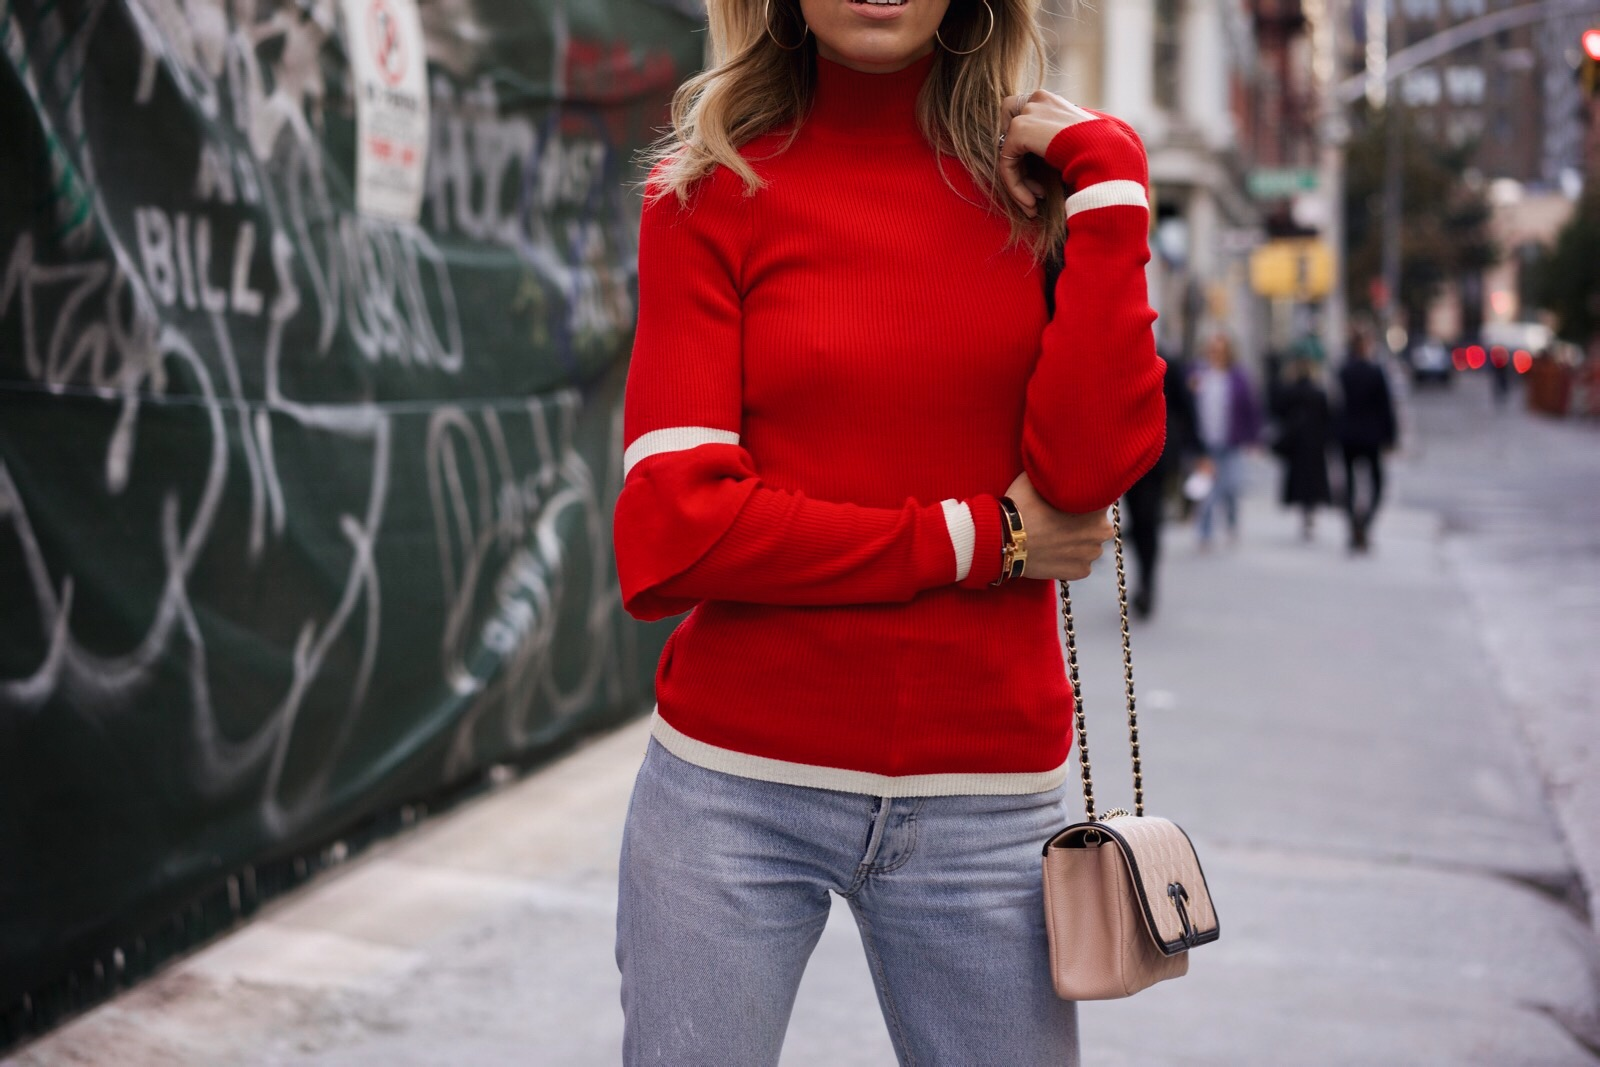 How to wear red, Fall must-haves, red knit, levis, Ruffle sleeve sweater